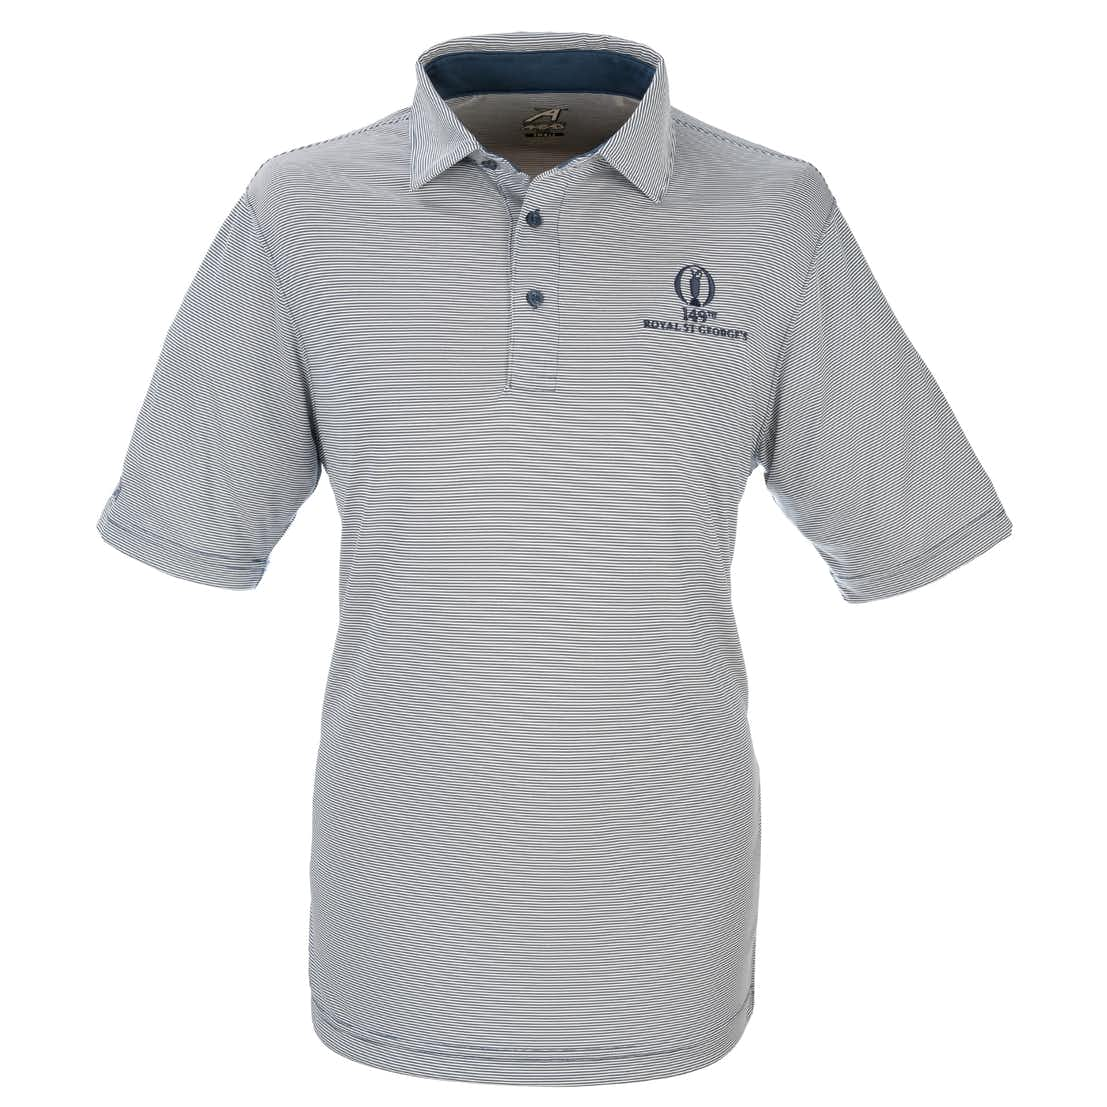 149th Royal St George's Striped Polo - Blue and White